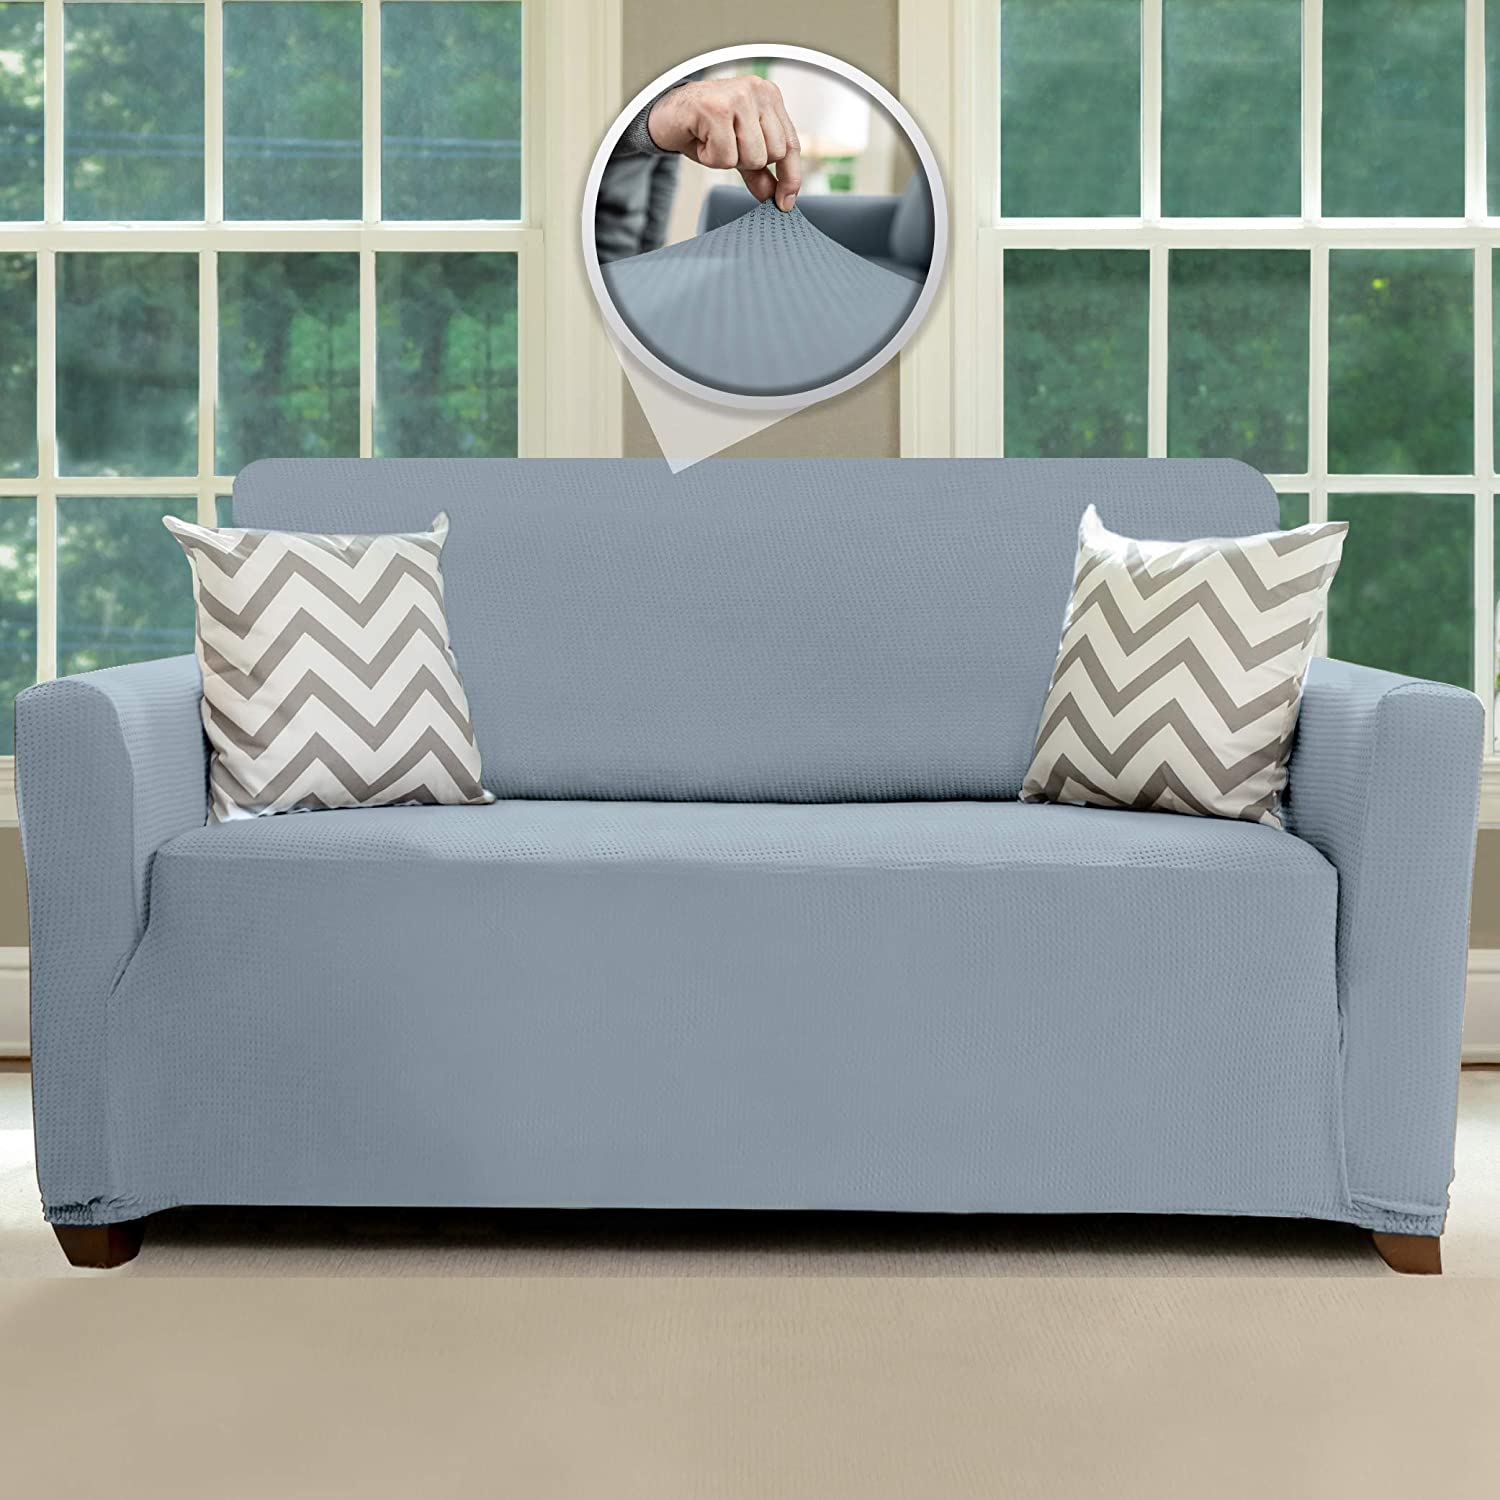 Sofa Shield Original Fitted 1 Col Slipcover Loveseat Japan Over item handling Maker New Piece Many